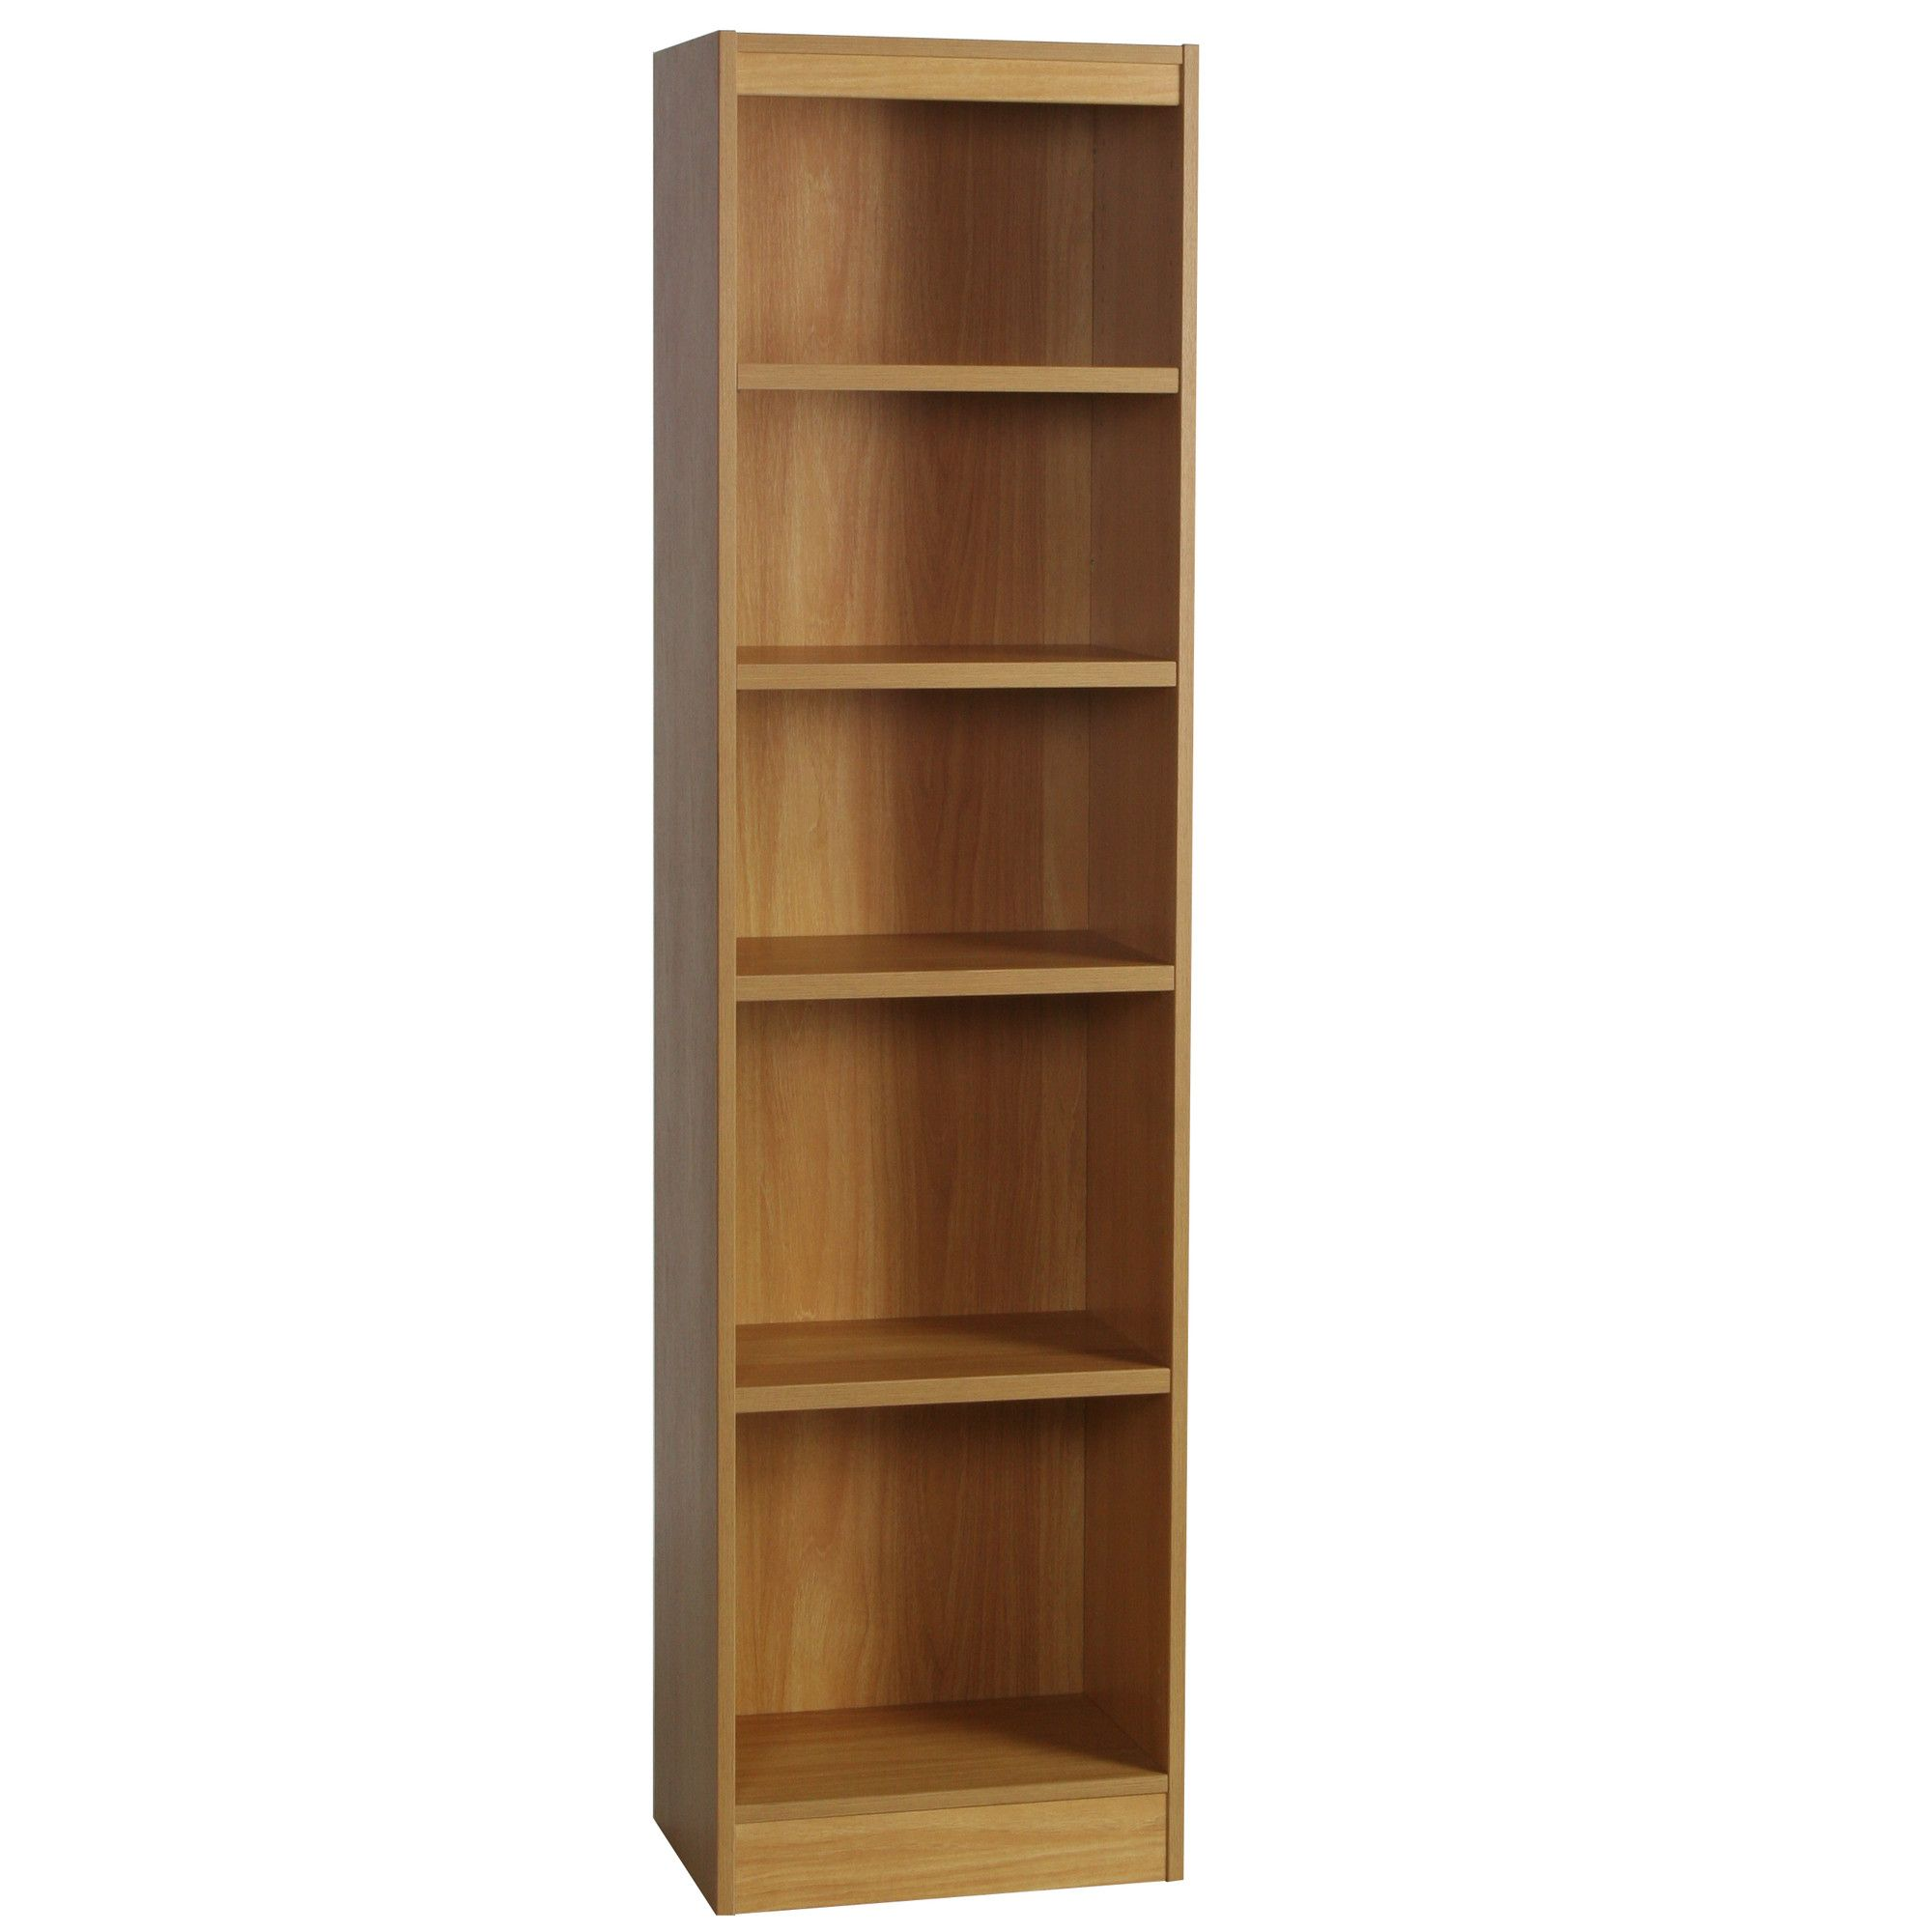 Enduro Five Shelf Tall Narrow Bookcase - Warm Oak at Tesco Direct